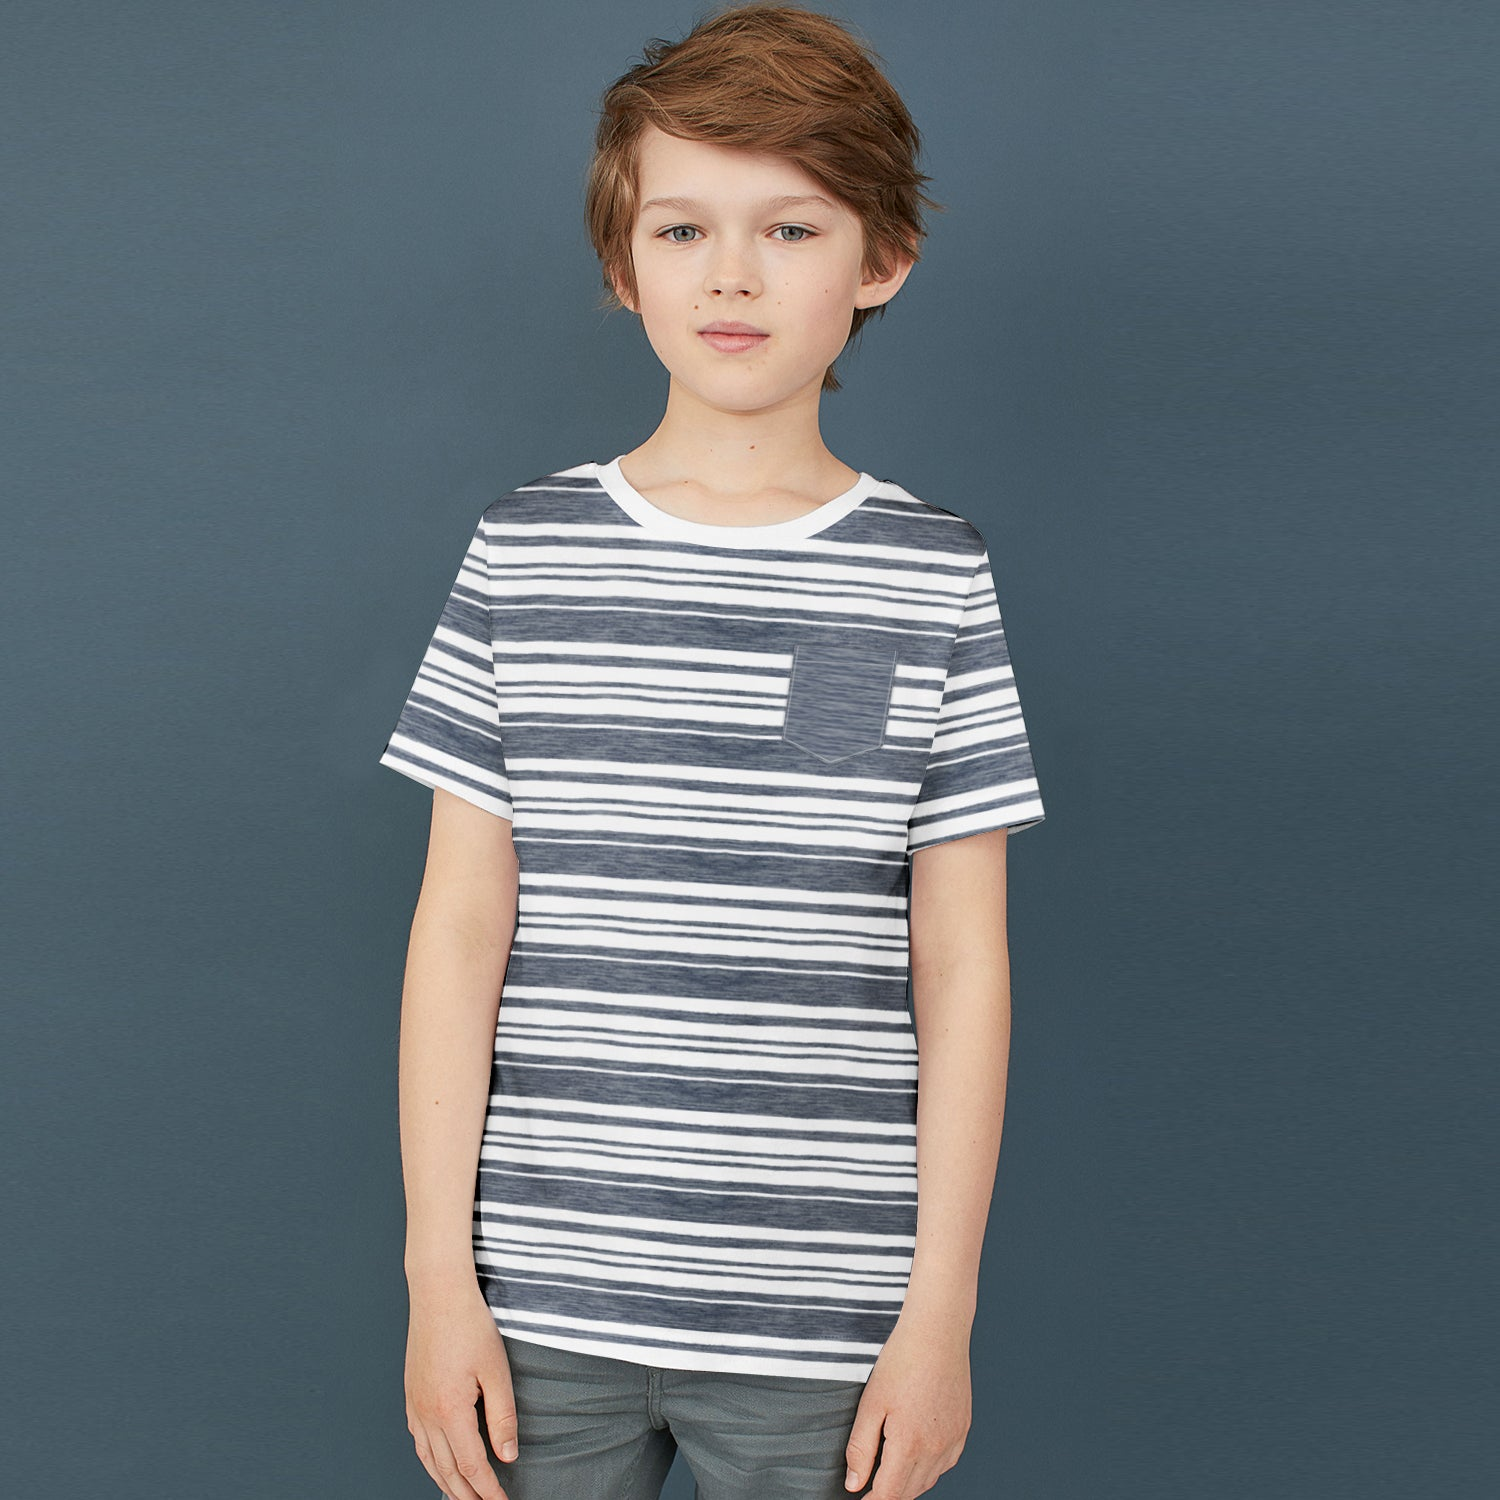 Next Single Jersey Crew Neck Pocket Style Tee Shirt For Kids-White with Melange-BE9097